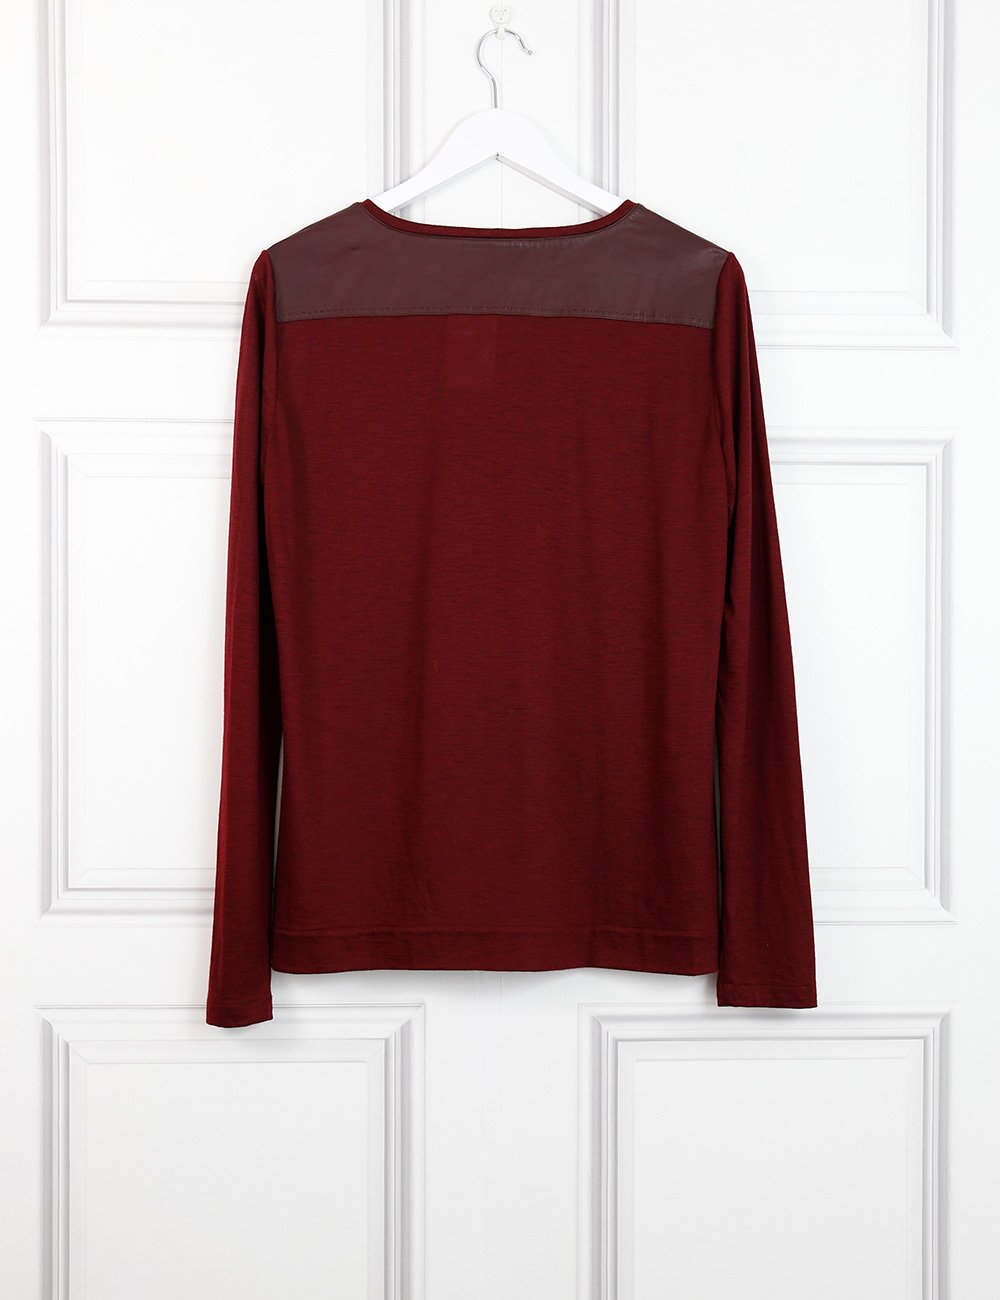 Loro Piana red cashmere top 14 Uk- My Wardrobe Mistakes